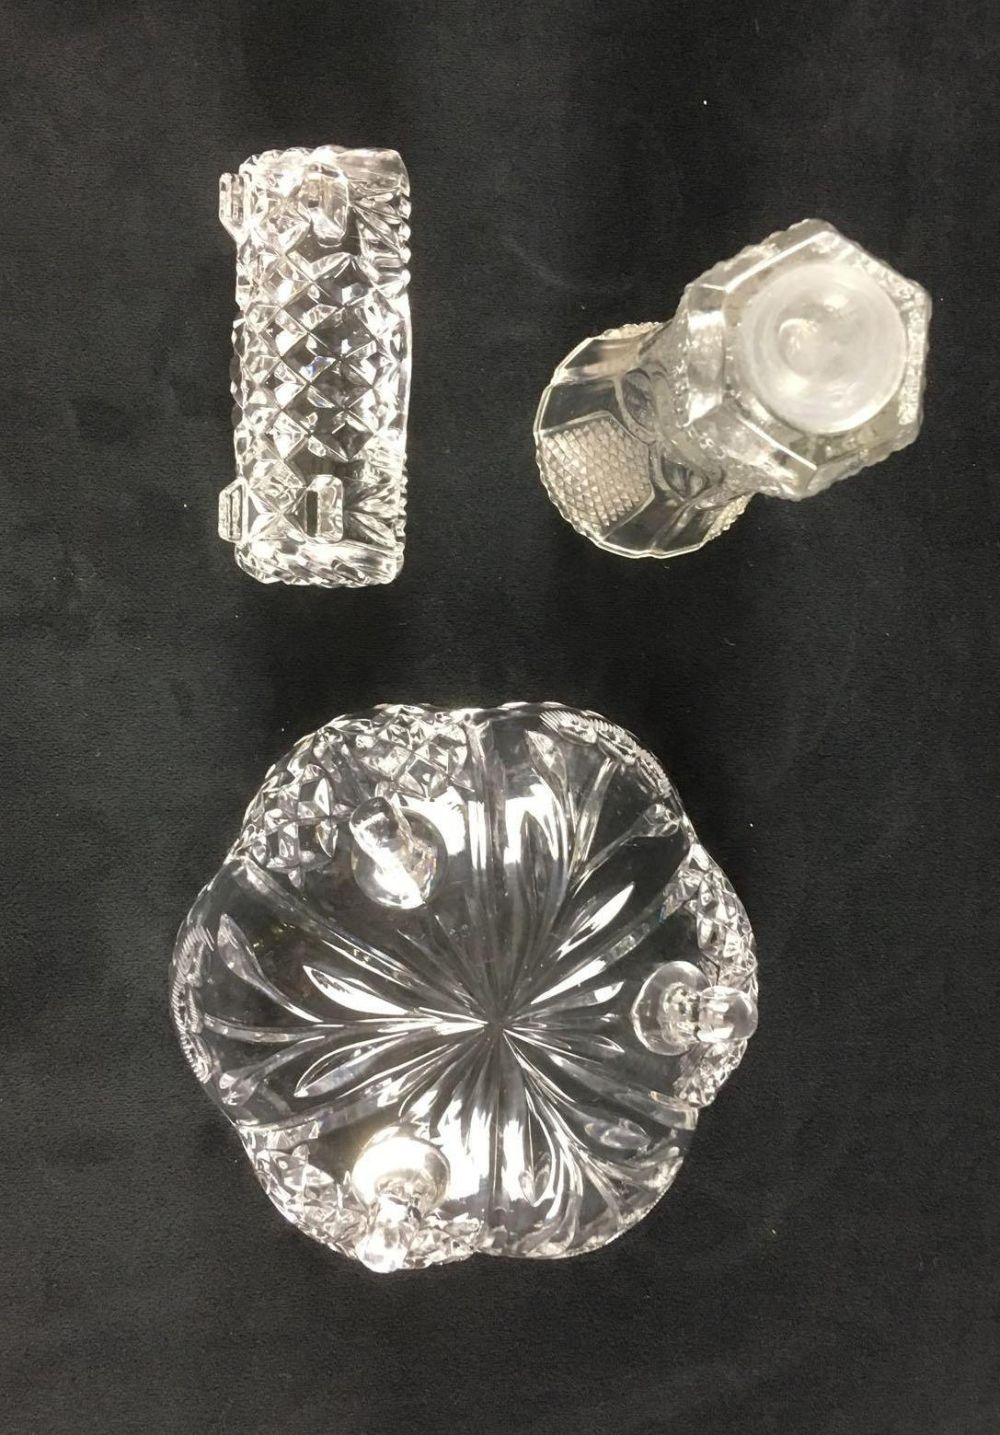 Lot 910: 3 Molded Glass Items